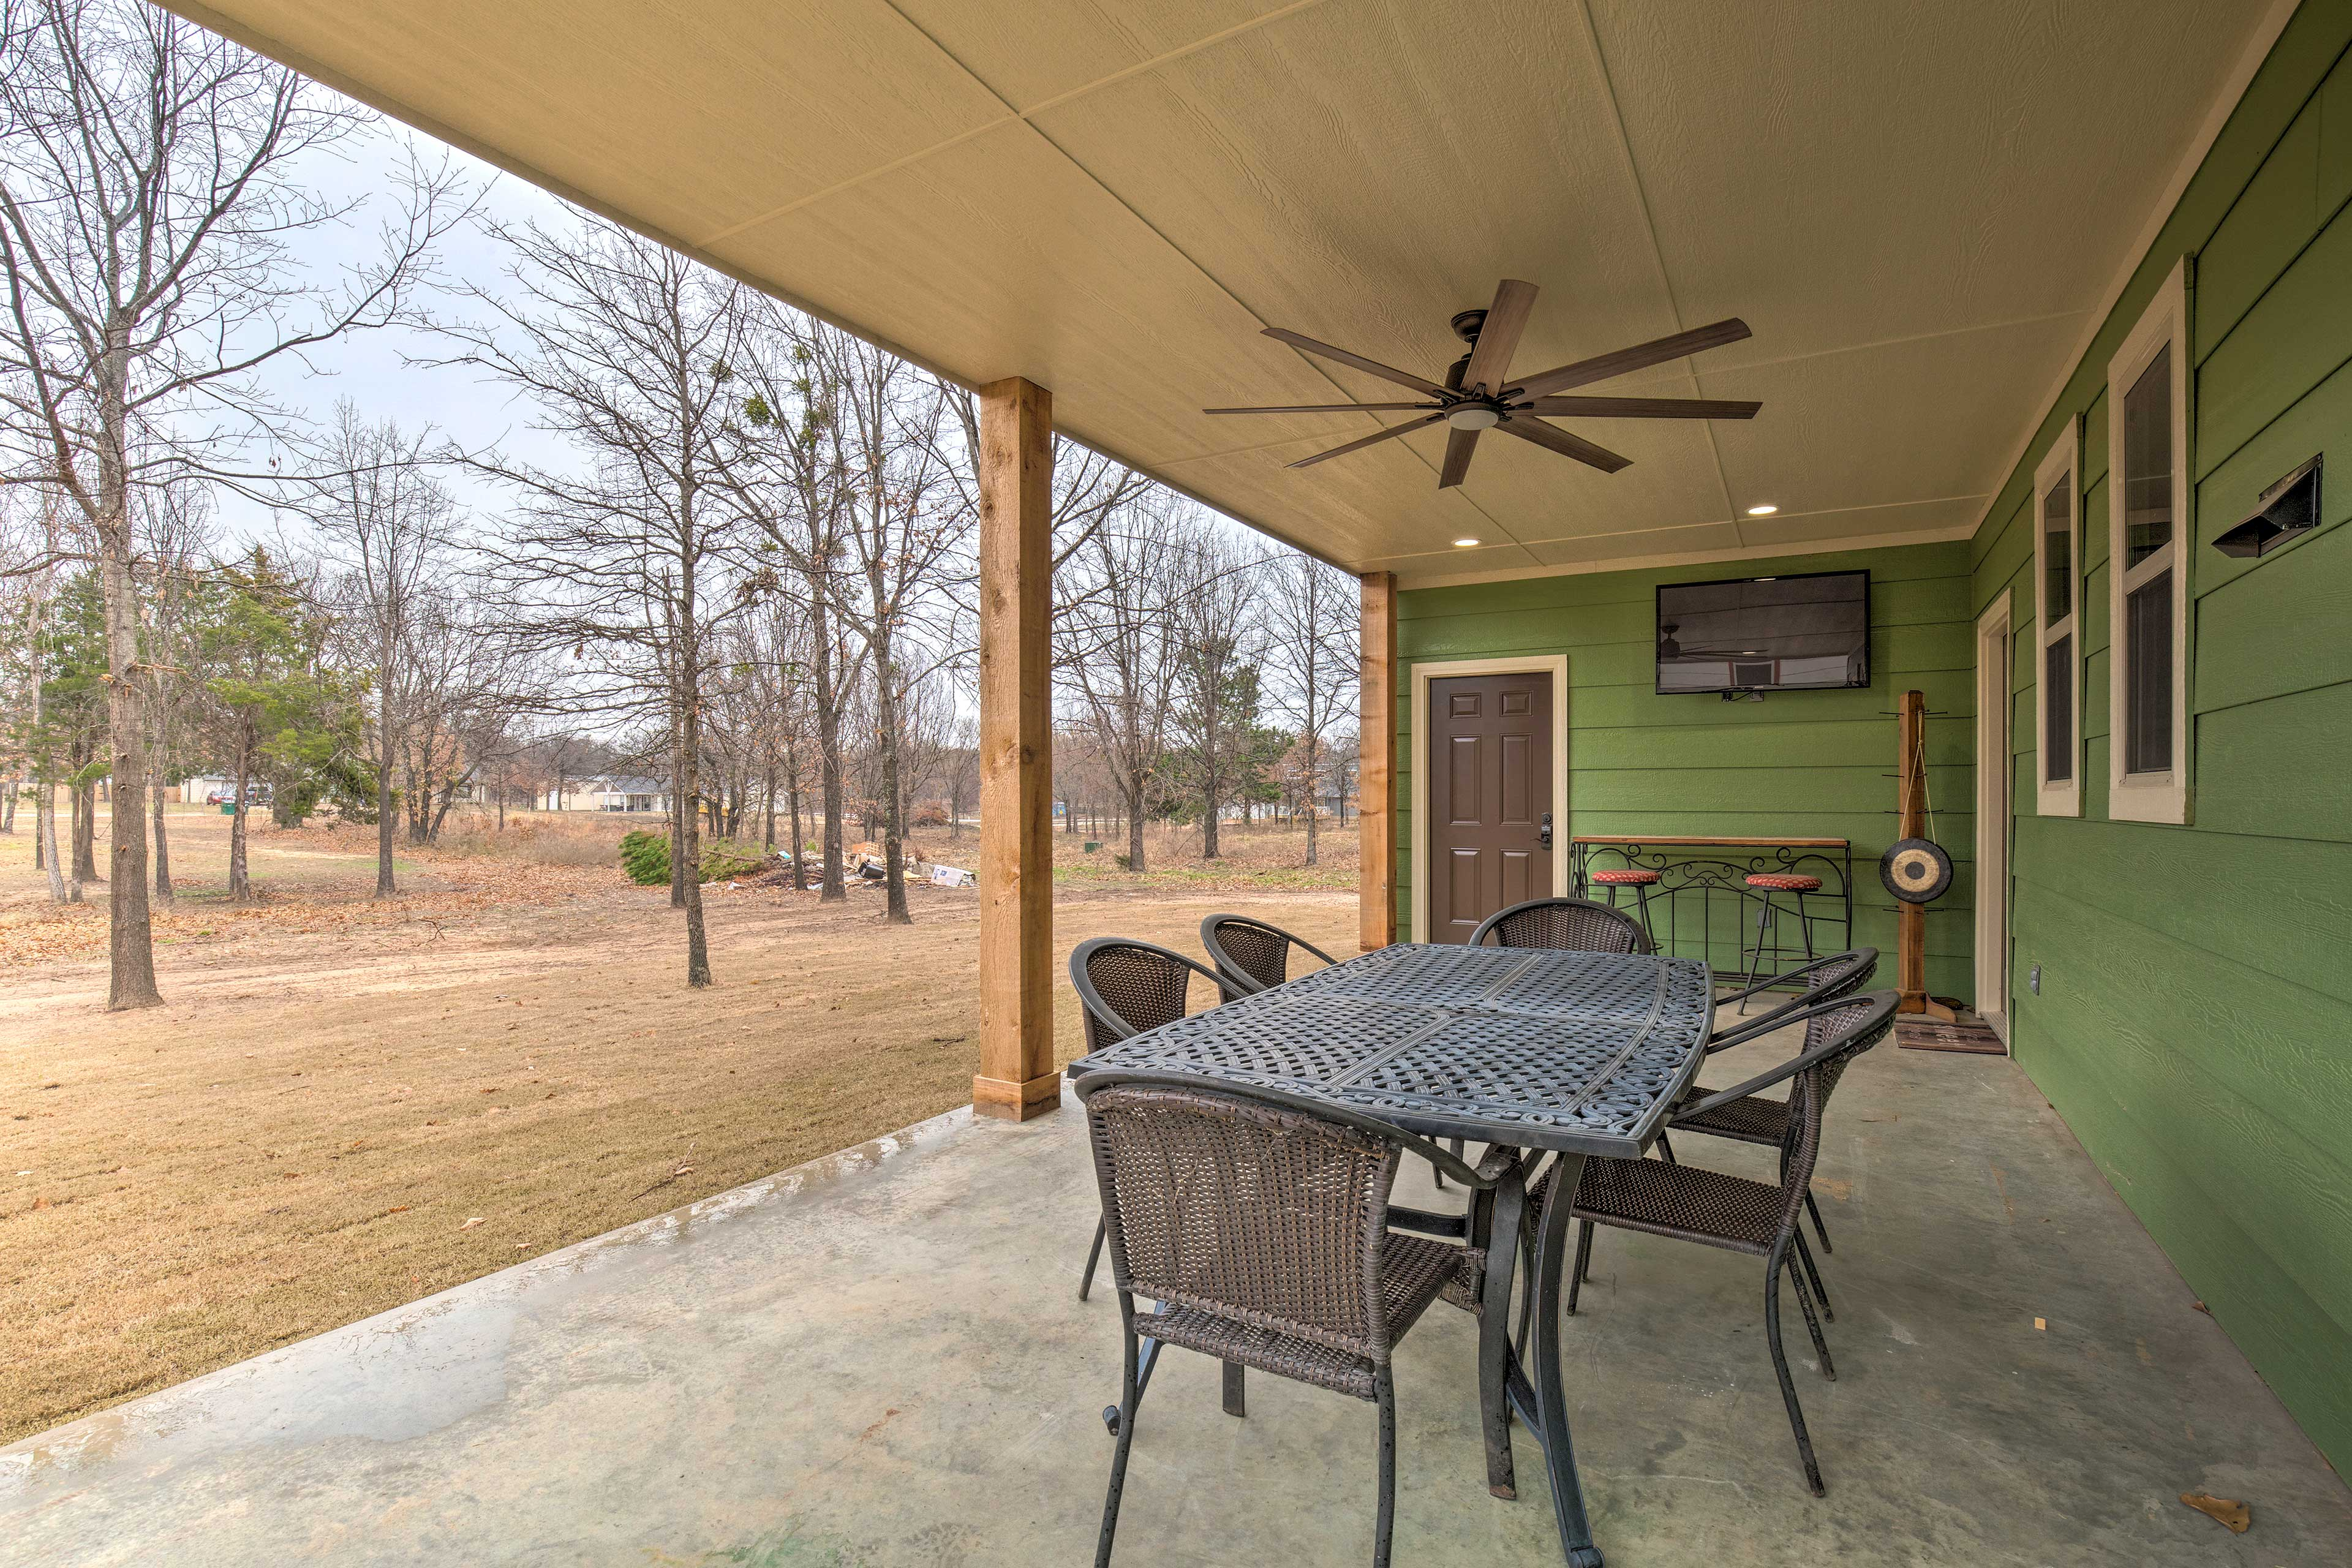 Relax, dine al fresco, and watch the big game on the covered patio.